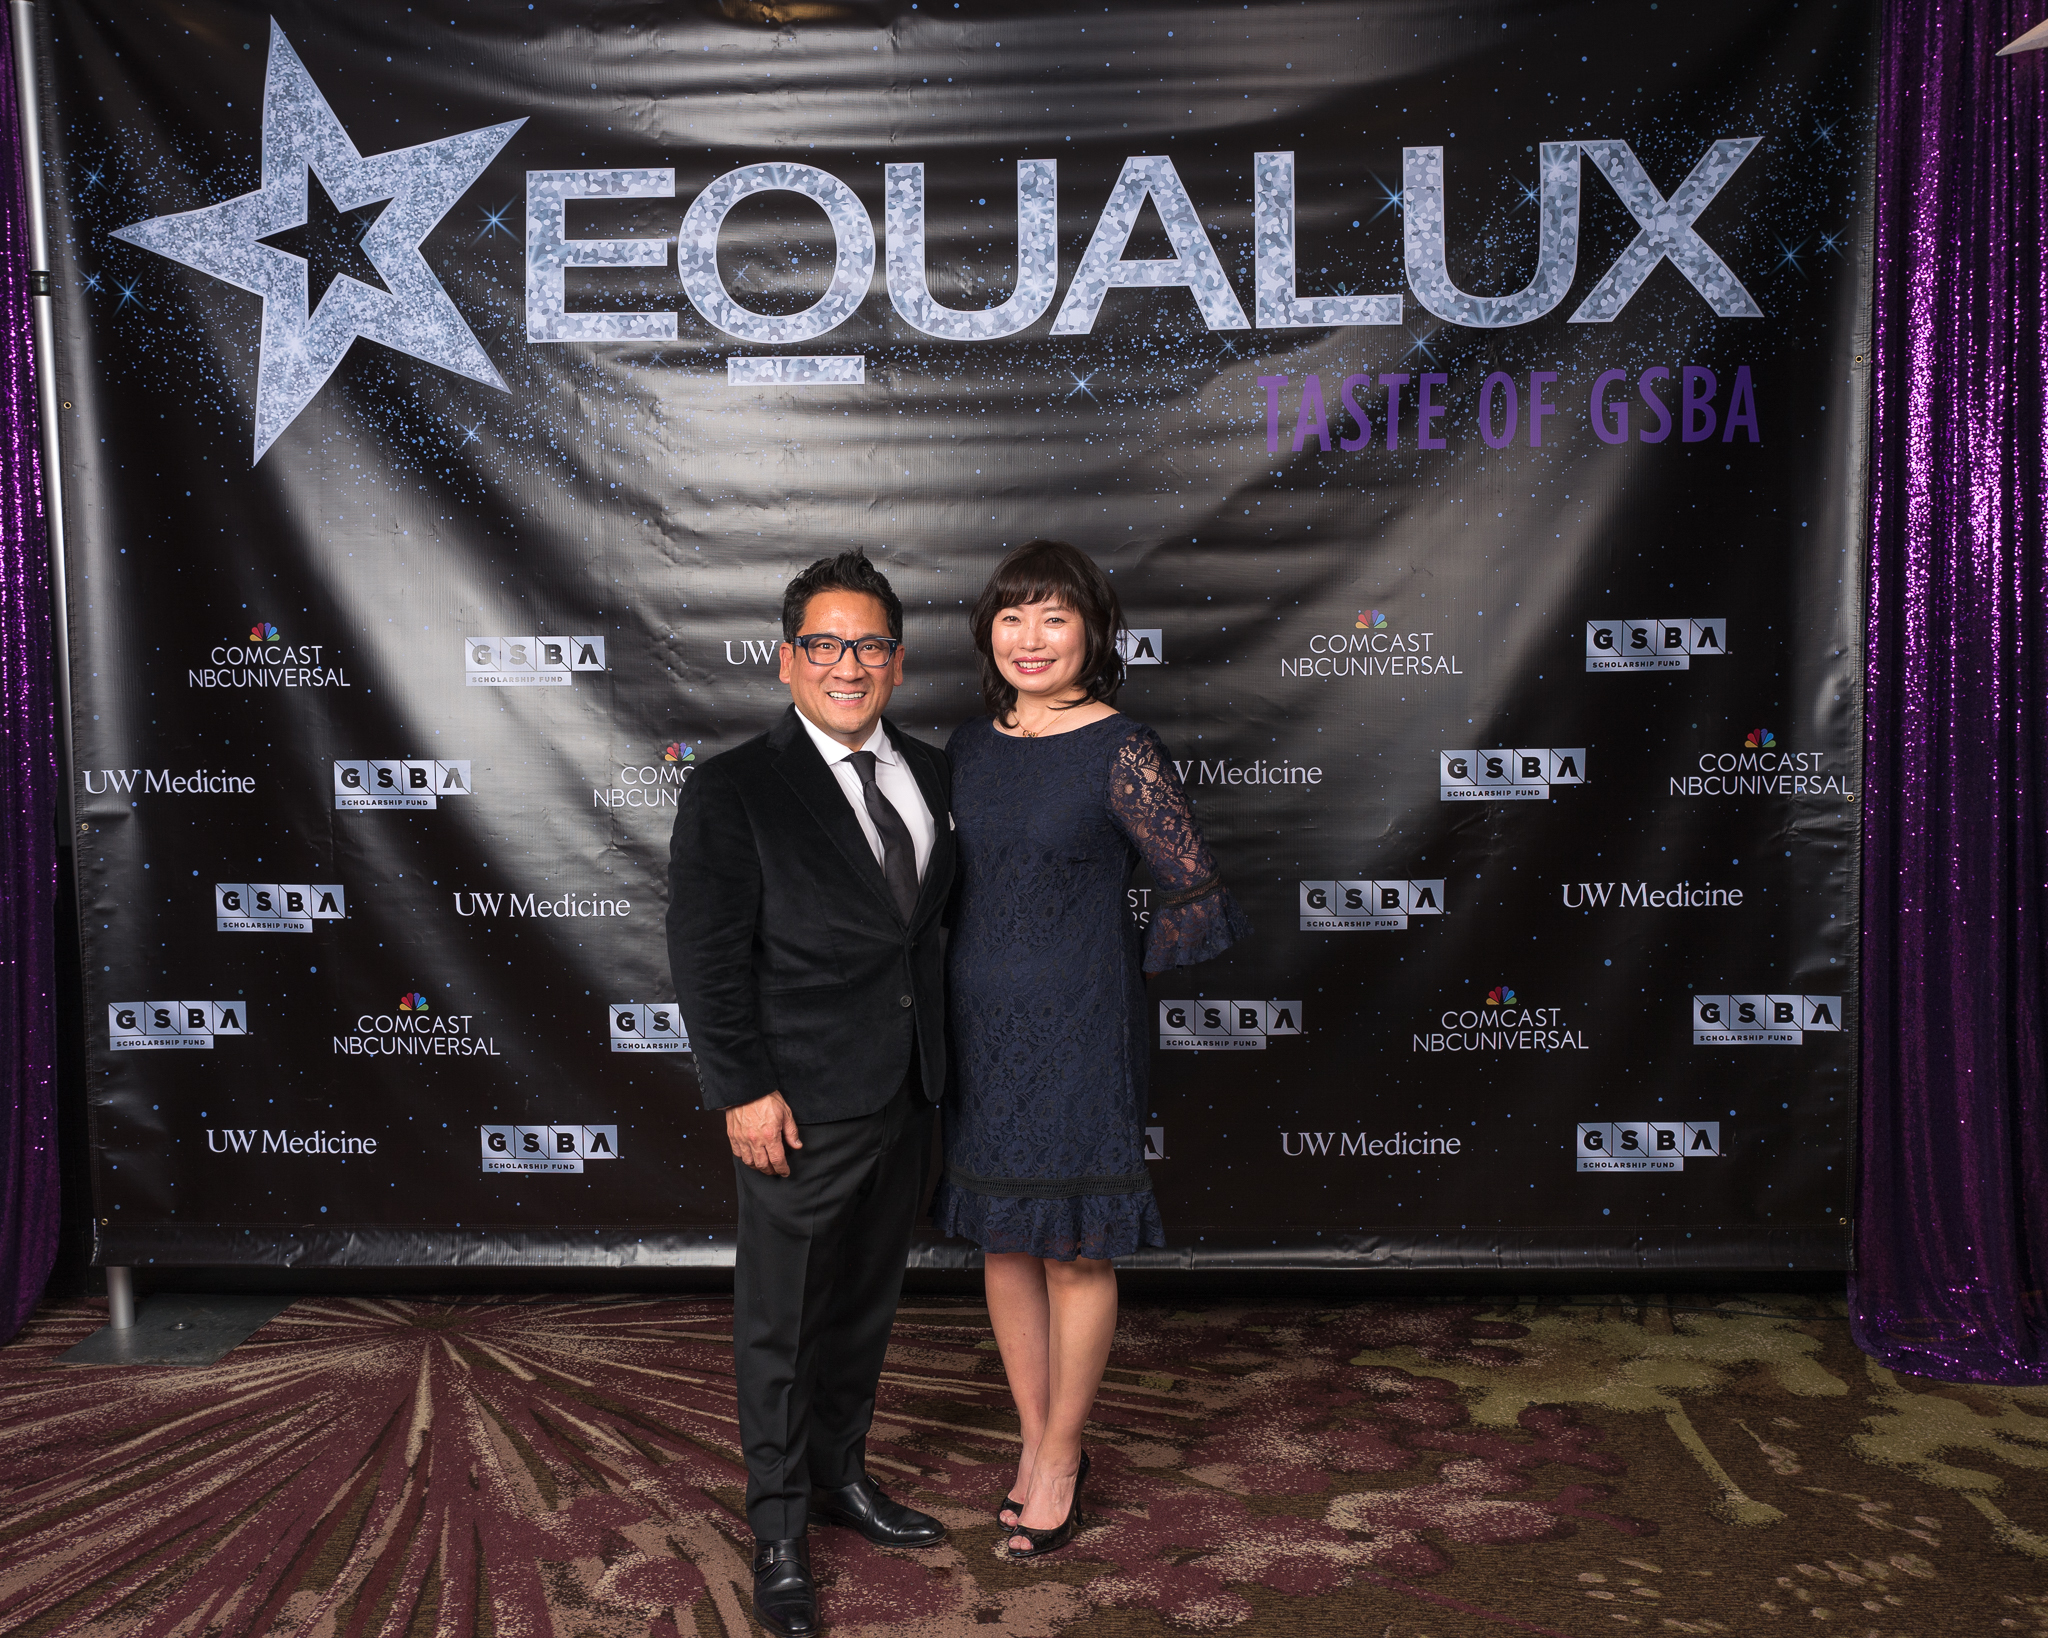 111718_GSBA EQUALUX at The Westin Seattle (Credit- Nate Gowdy)-170.jpg